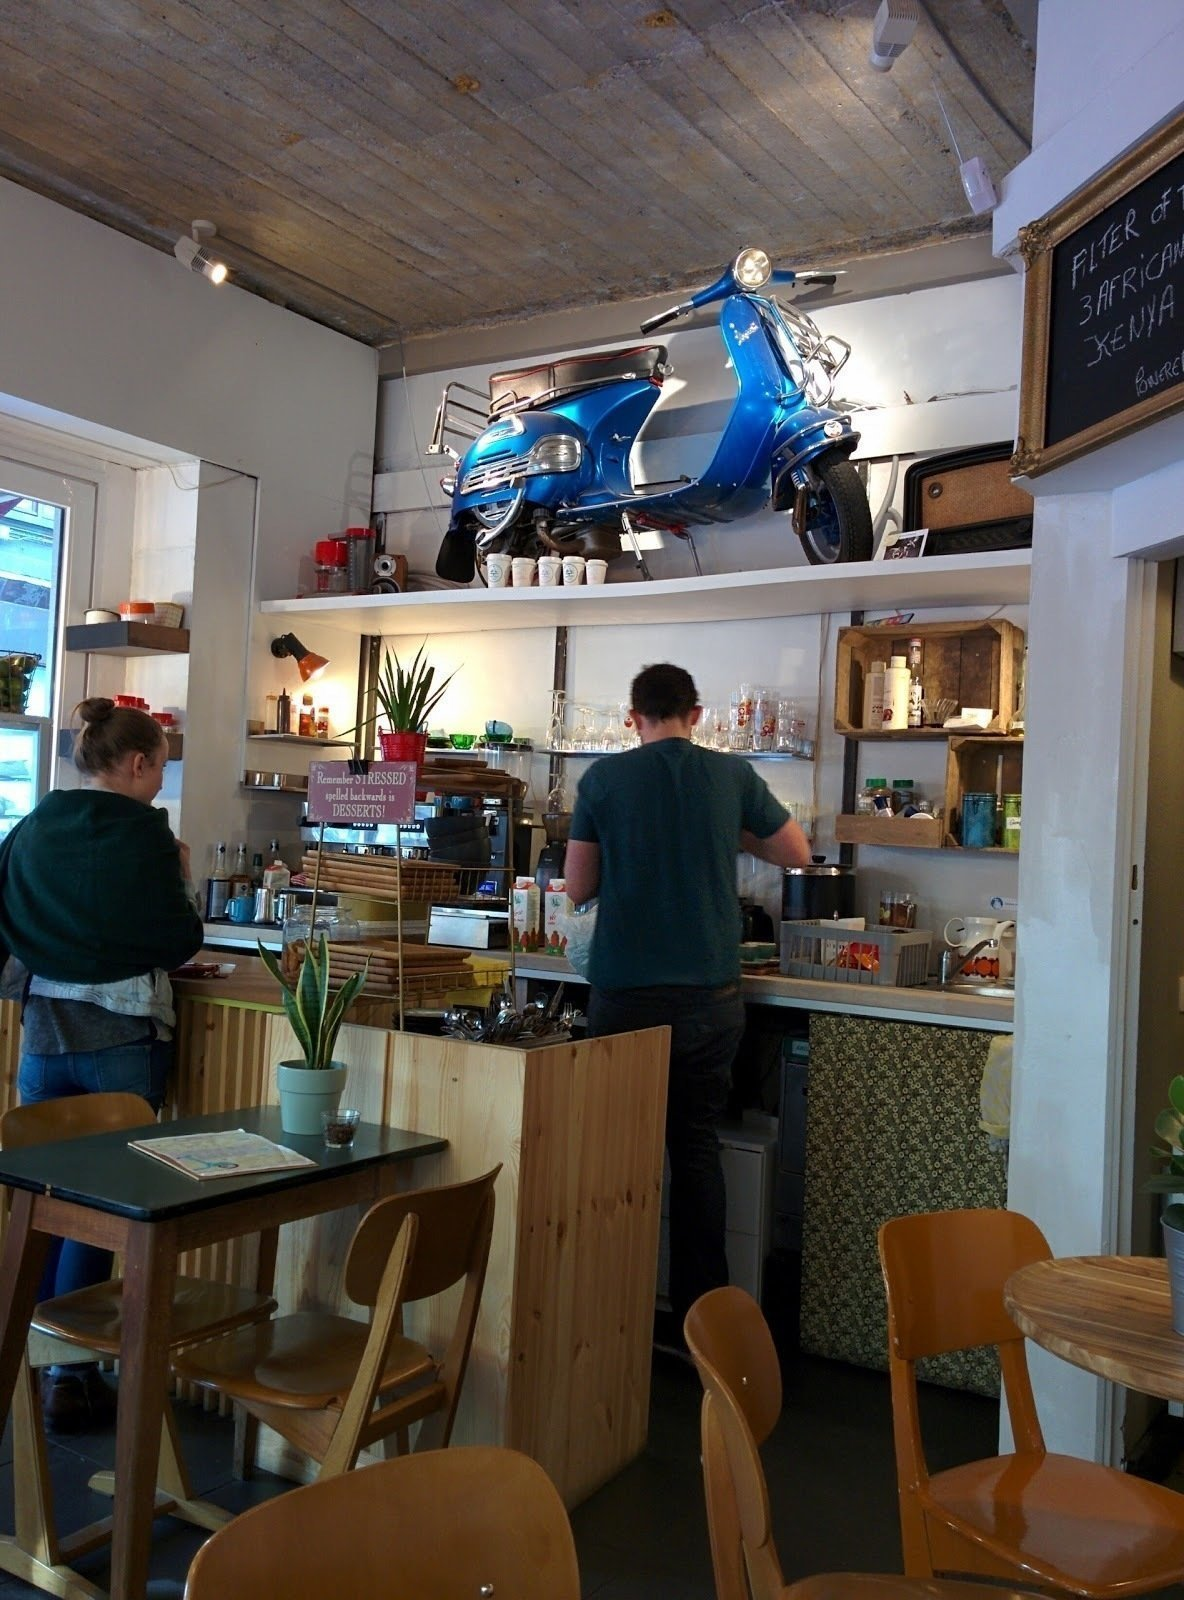 Tartoer - Coffee (Vespa) Bar: A Work-Friendly Place in Antwerp